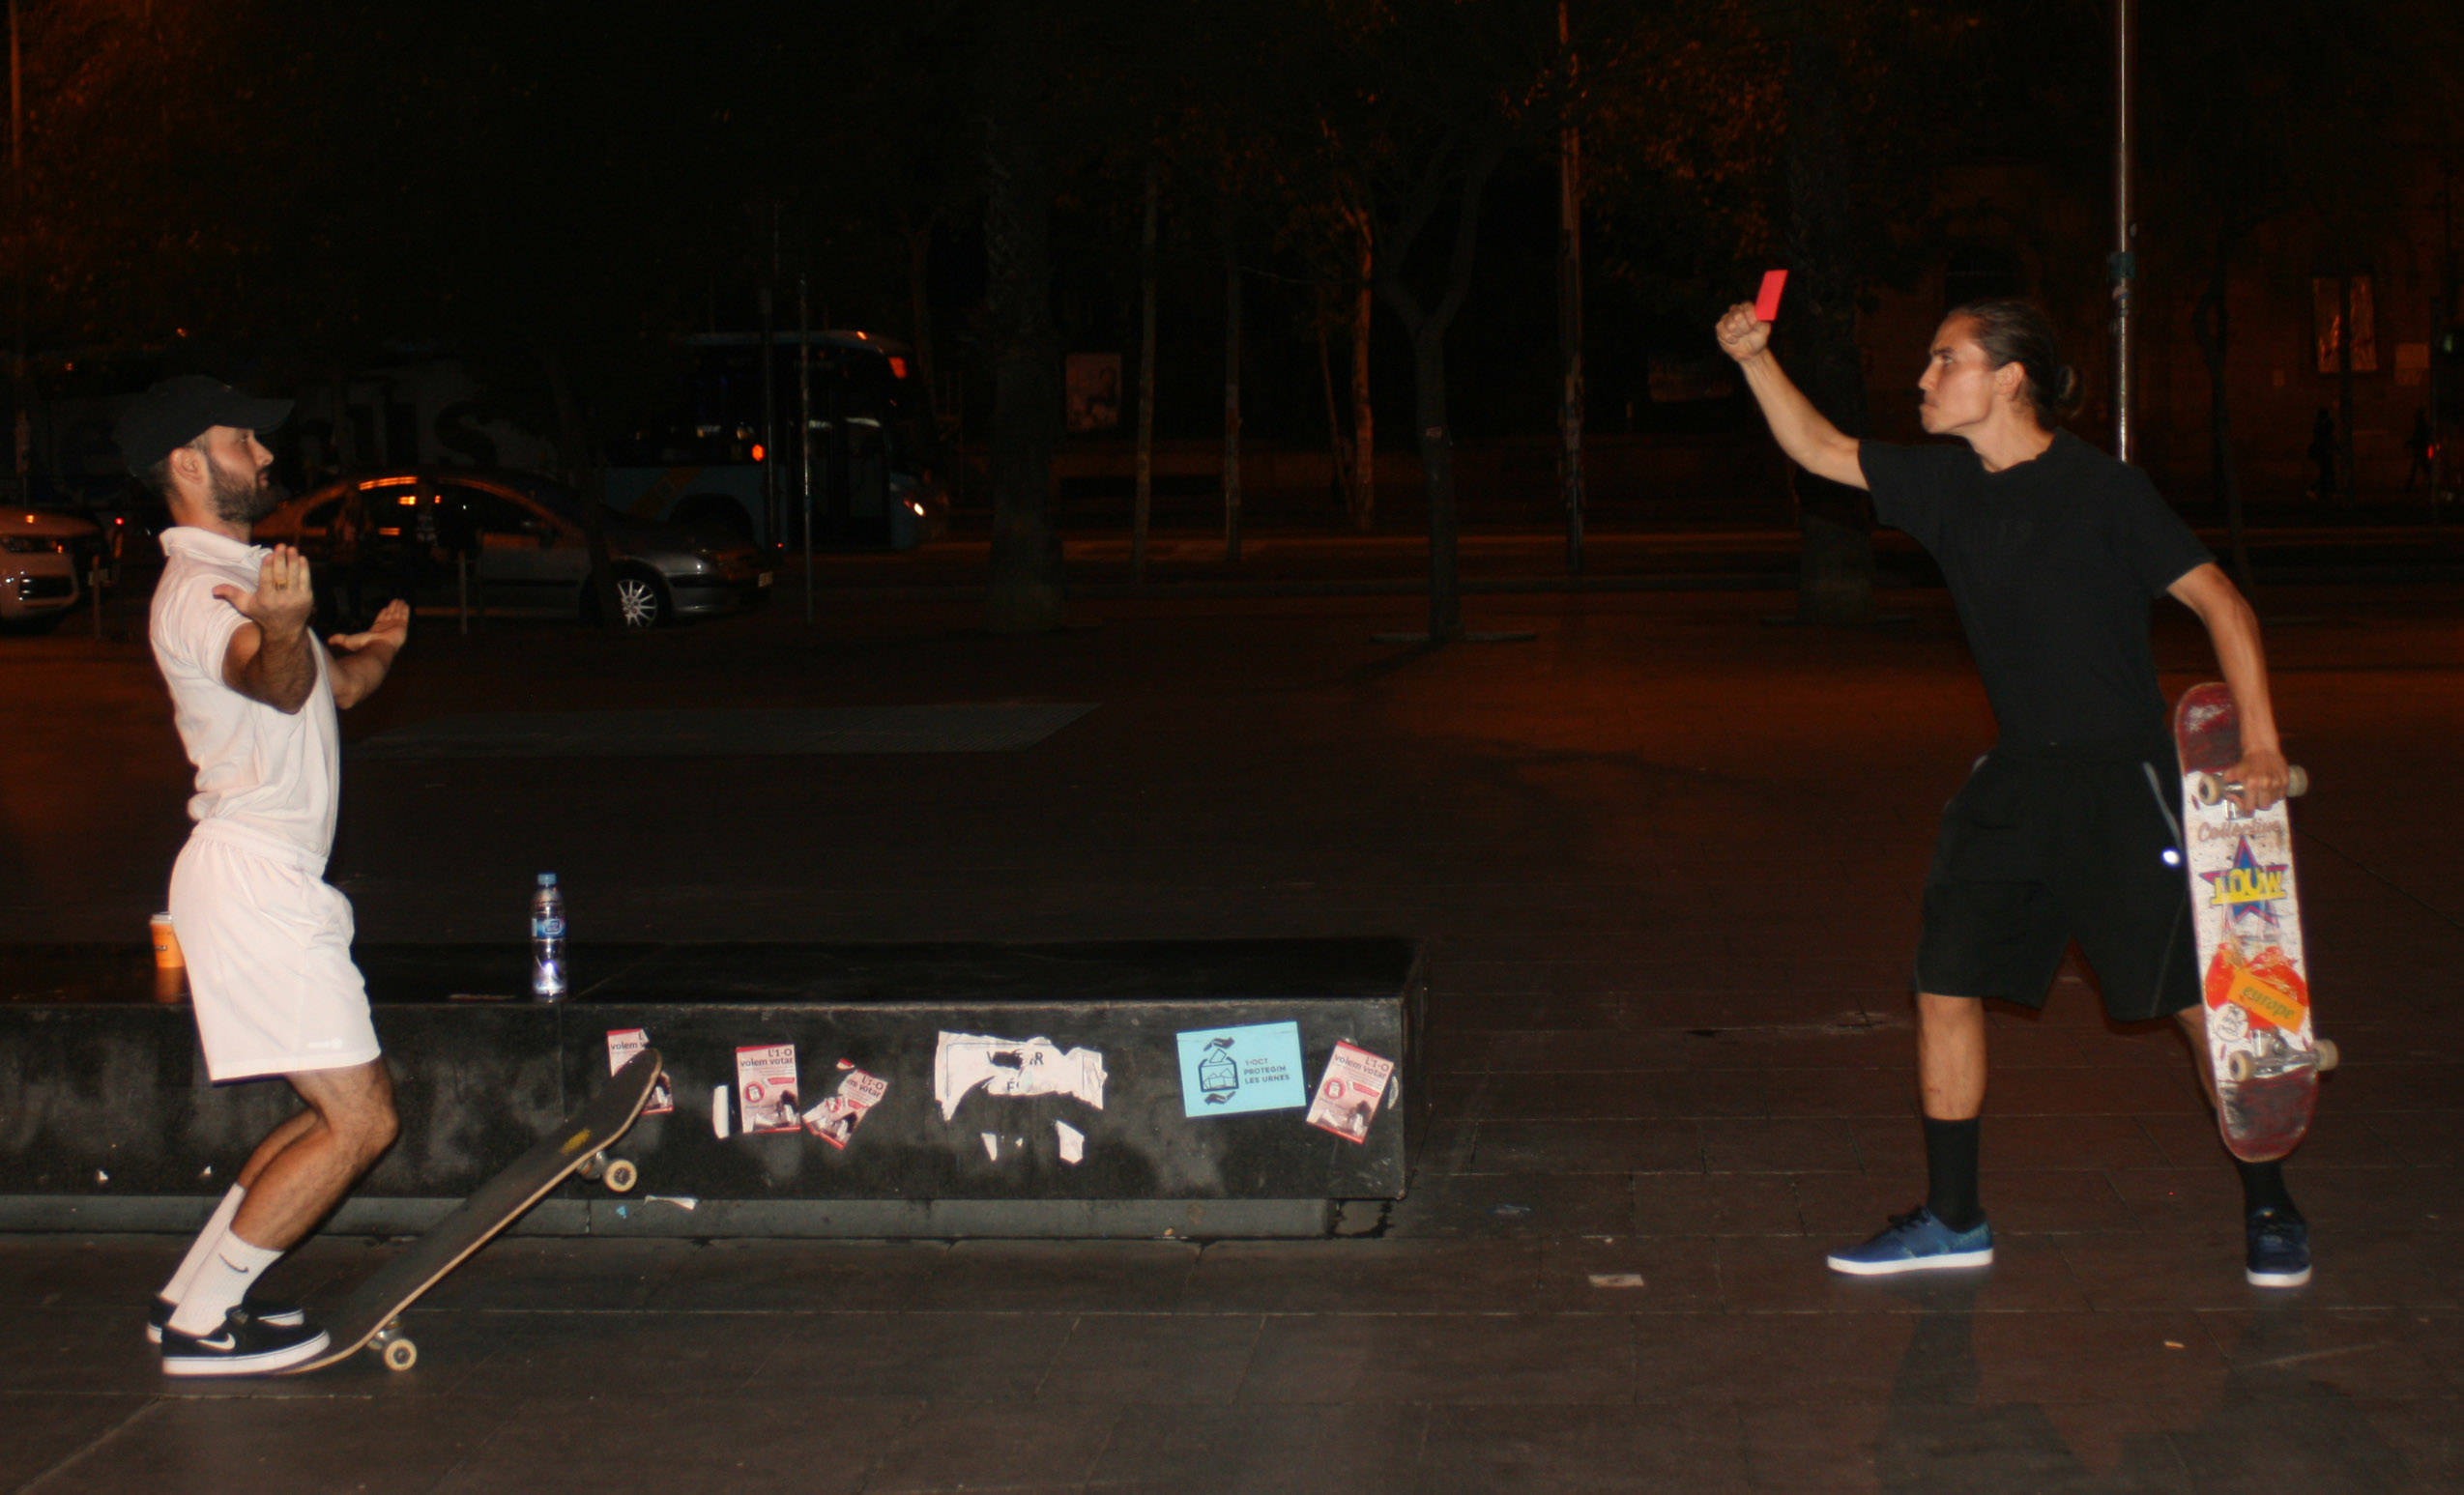 THE DAILY PUSH -- Skateboarding as Sport: Why Our Bodies Hurt